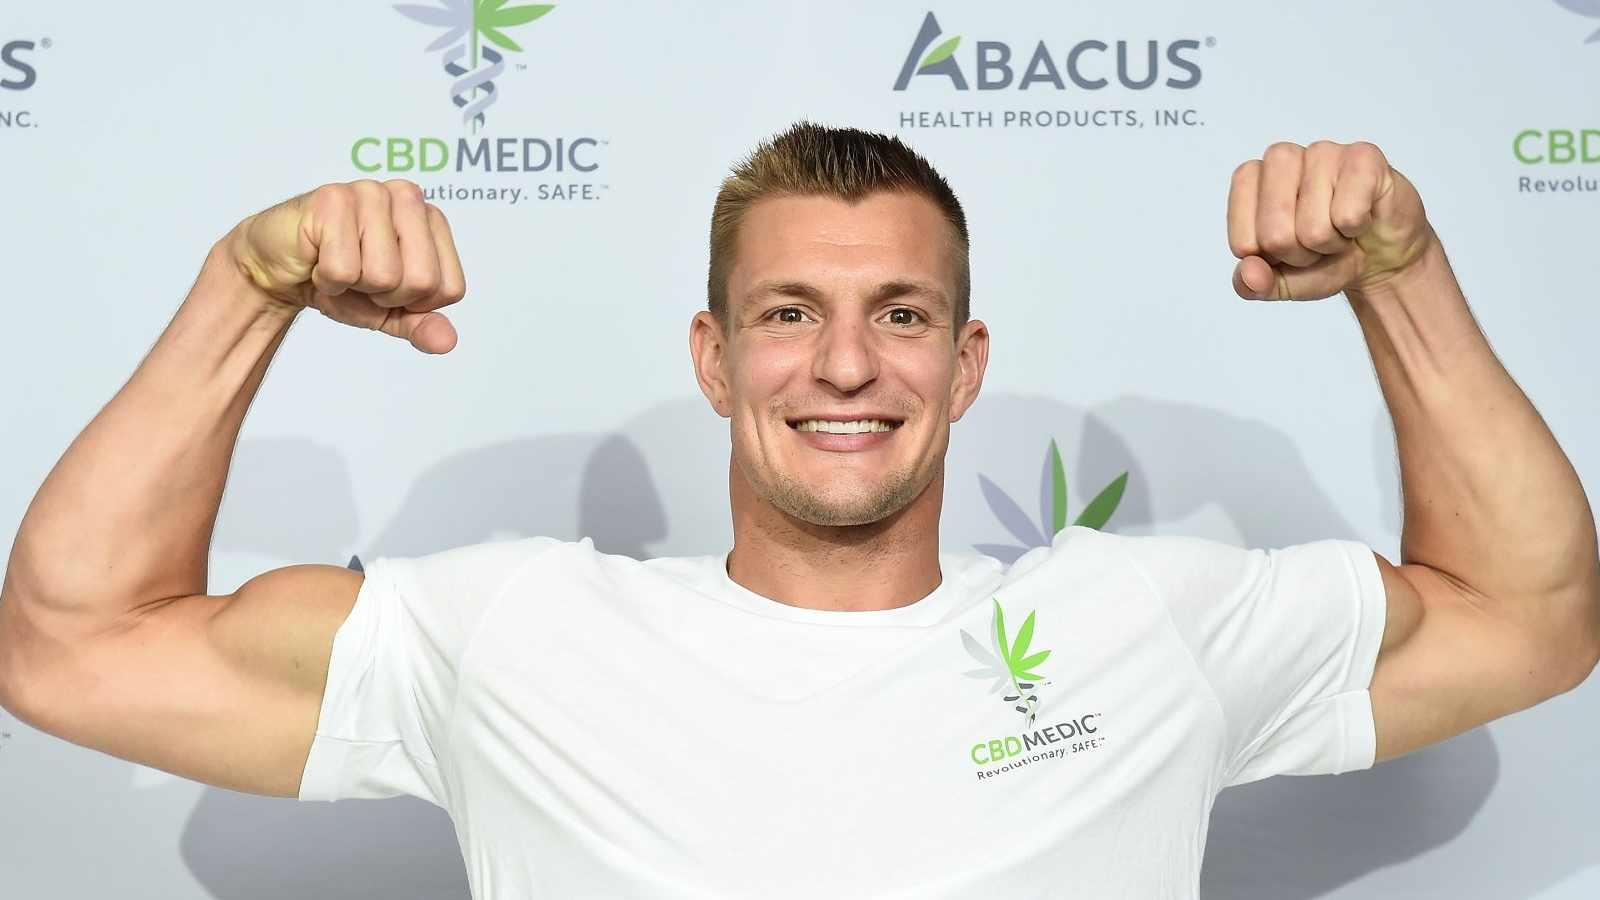 Rob Gronkowski has a sponsorship with CBDMedic and talks often about CBD helping pain relief.